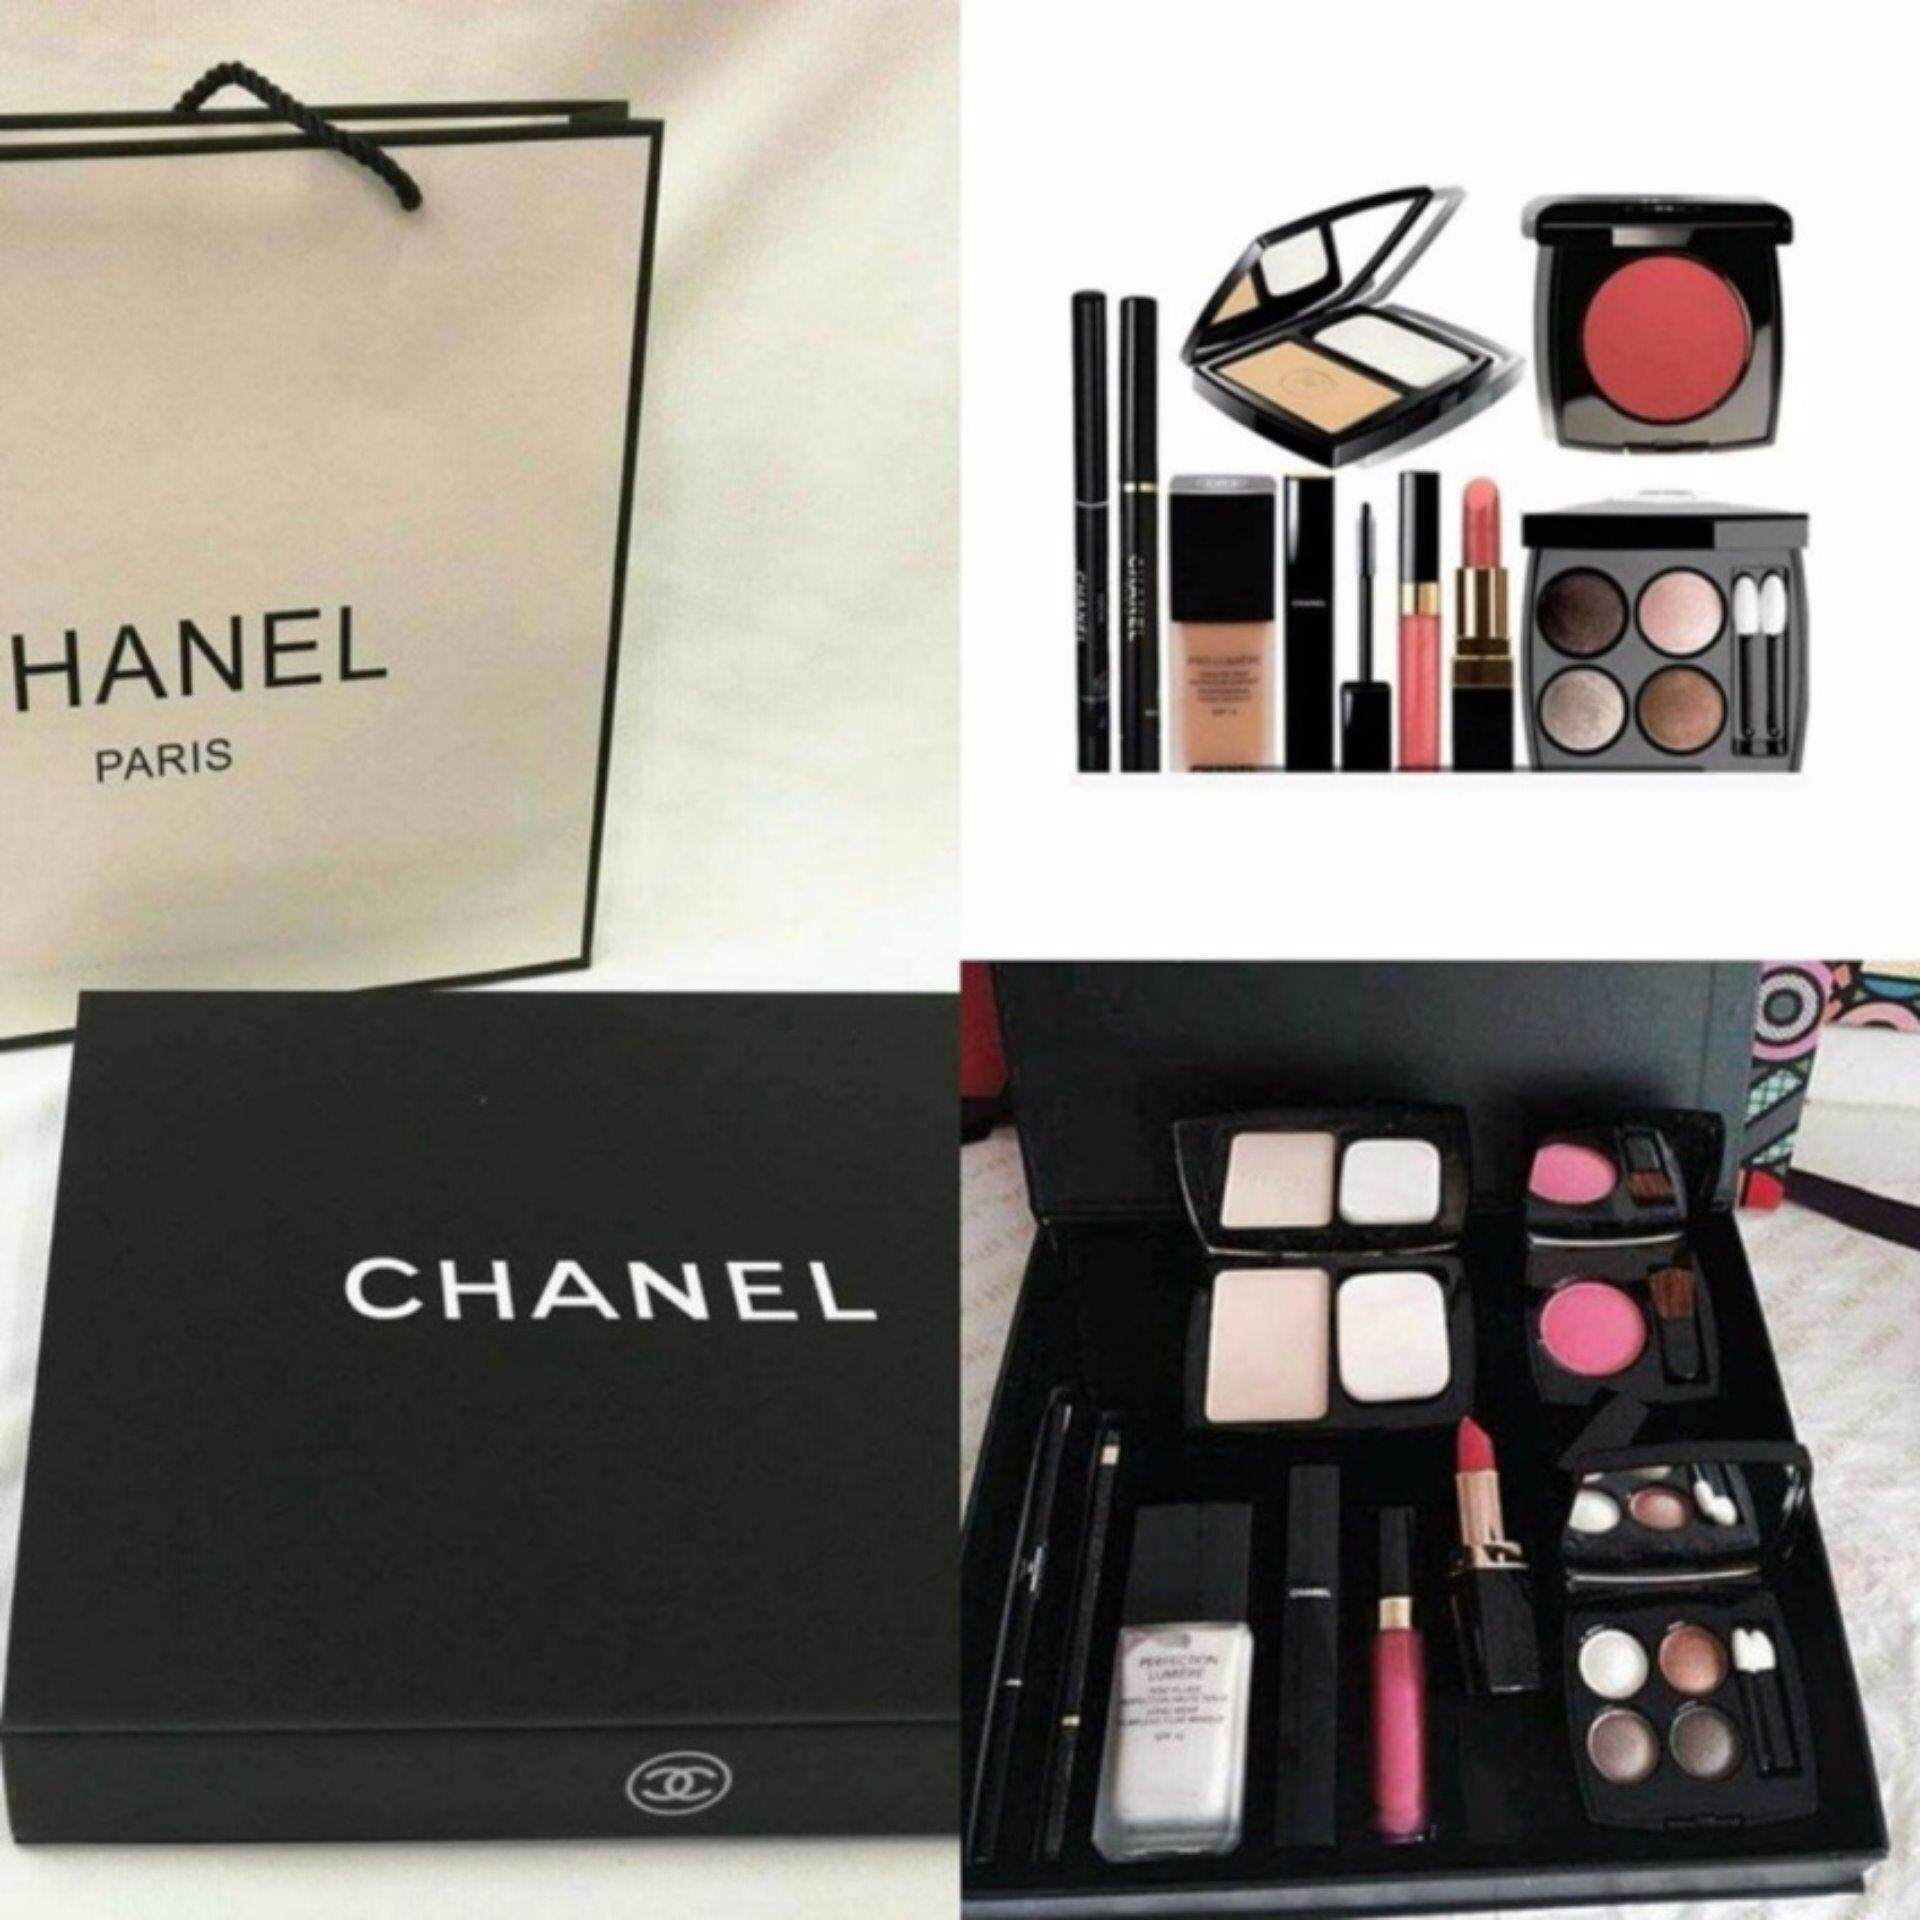 Chanel 9 In 1 Make Up Set (Lipstick Blusher Cpmpact Powder Eyeliner Lipgloss Foundation )